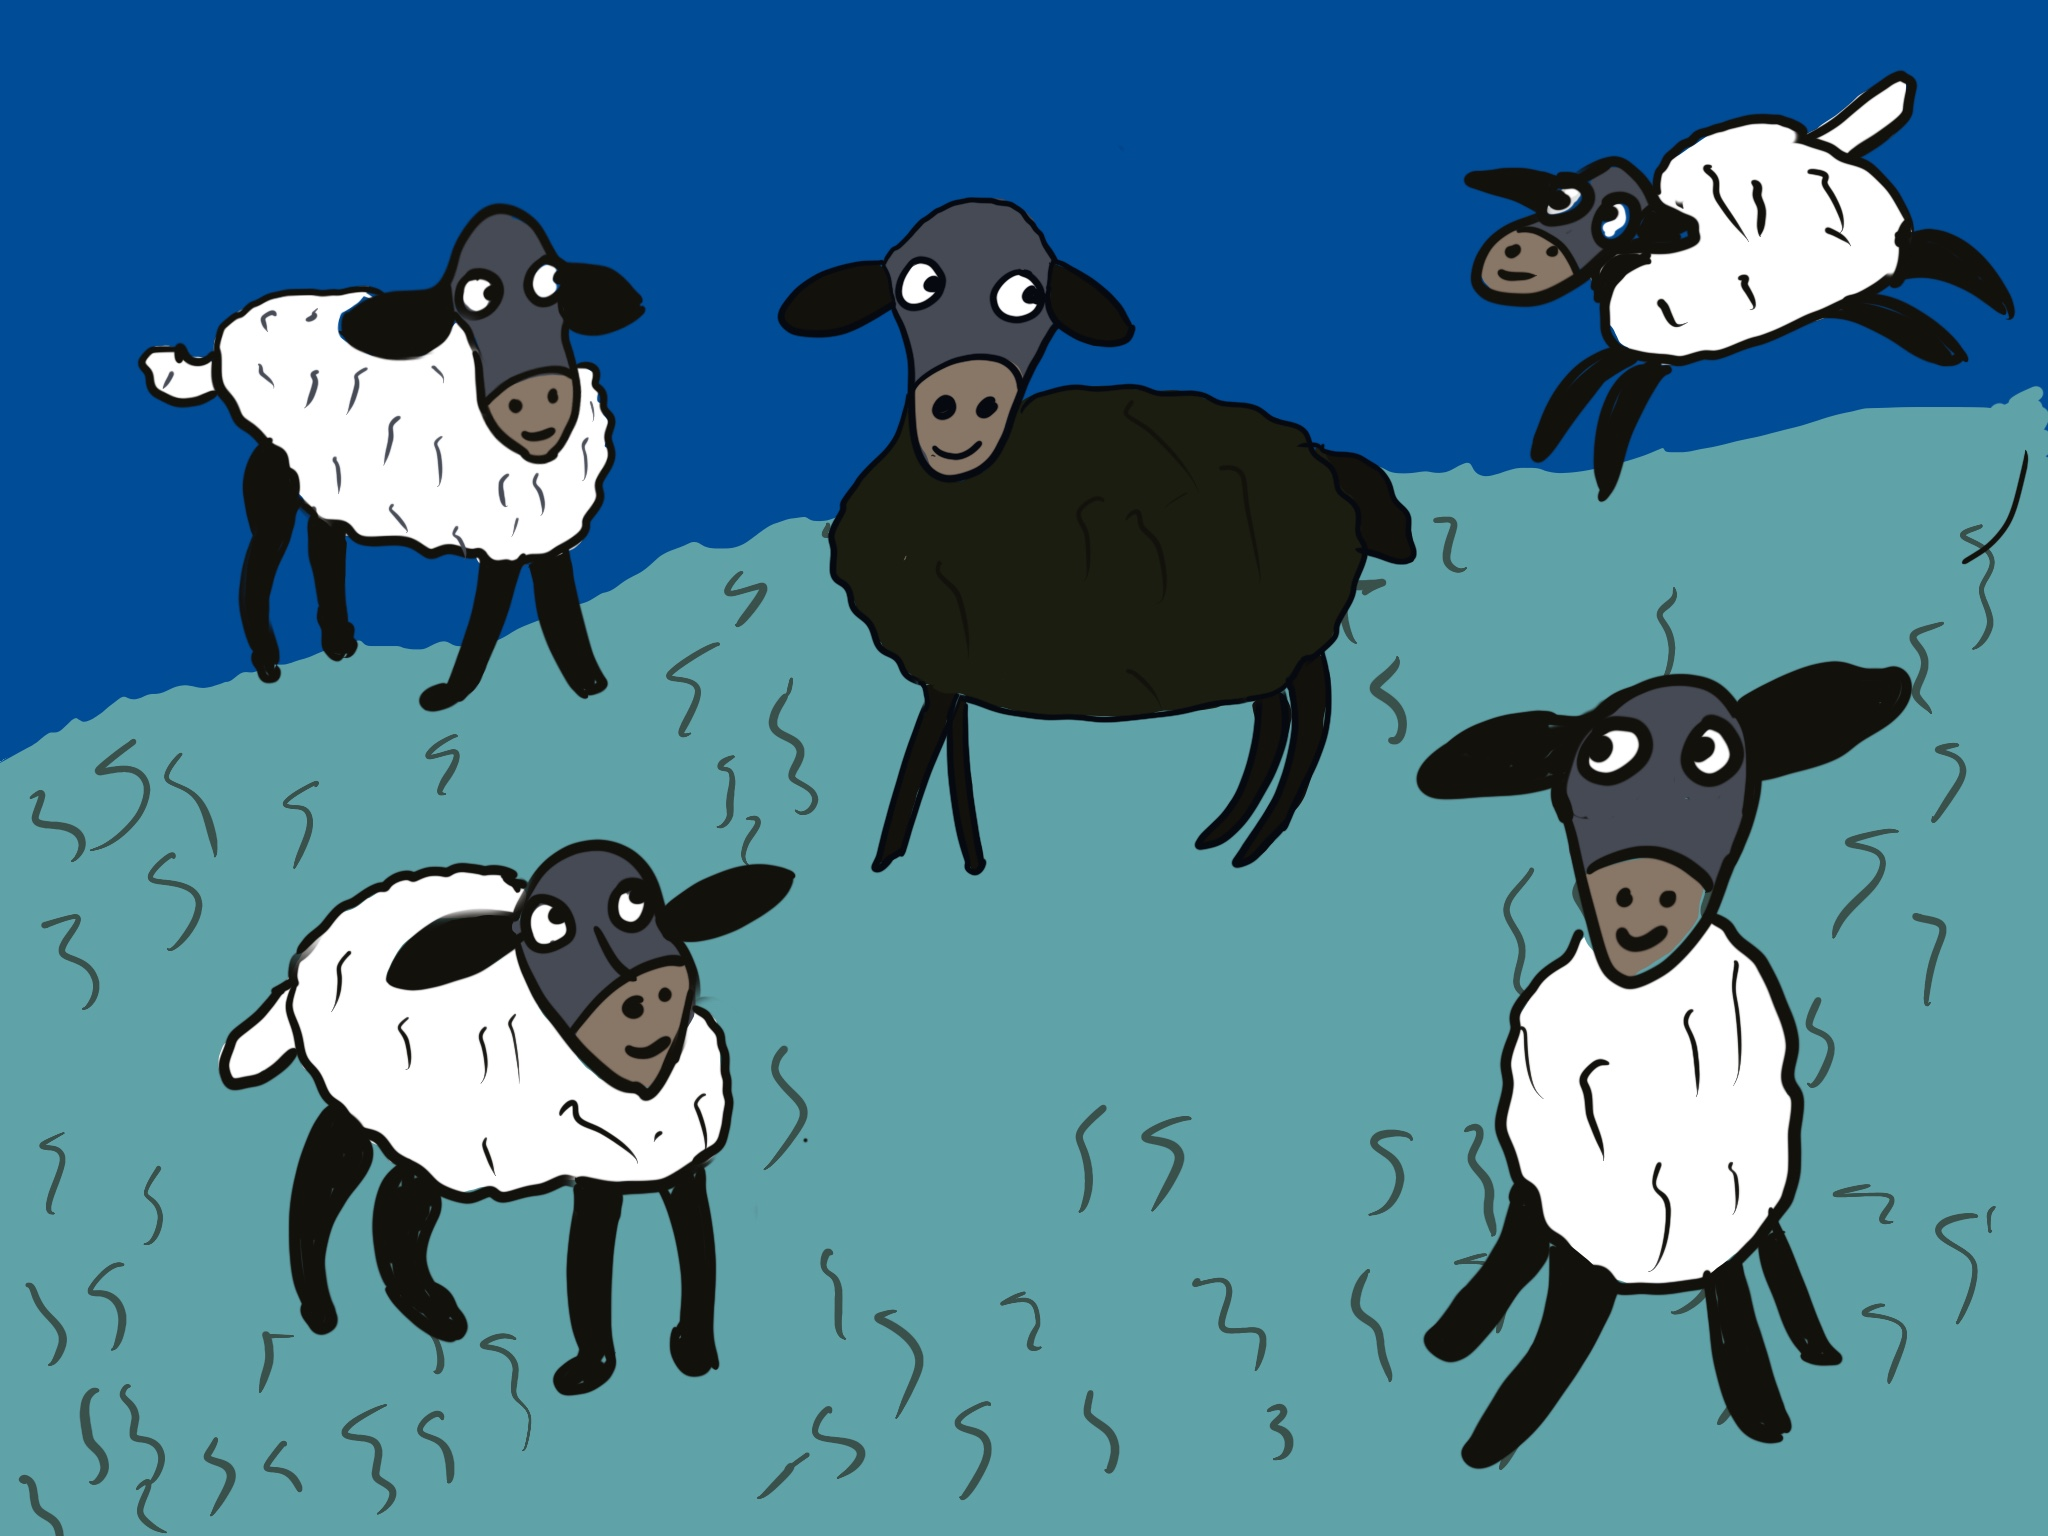 Song Baa Baa Black Sheep